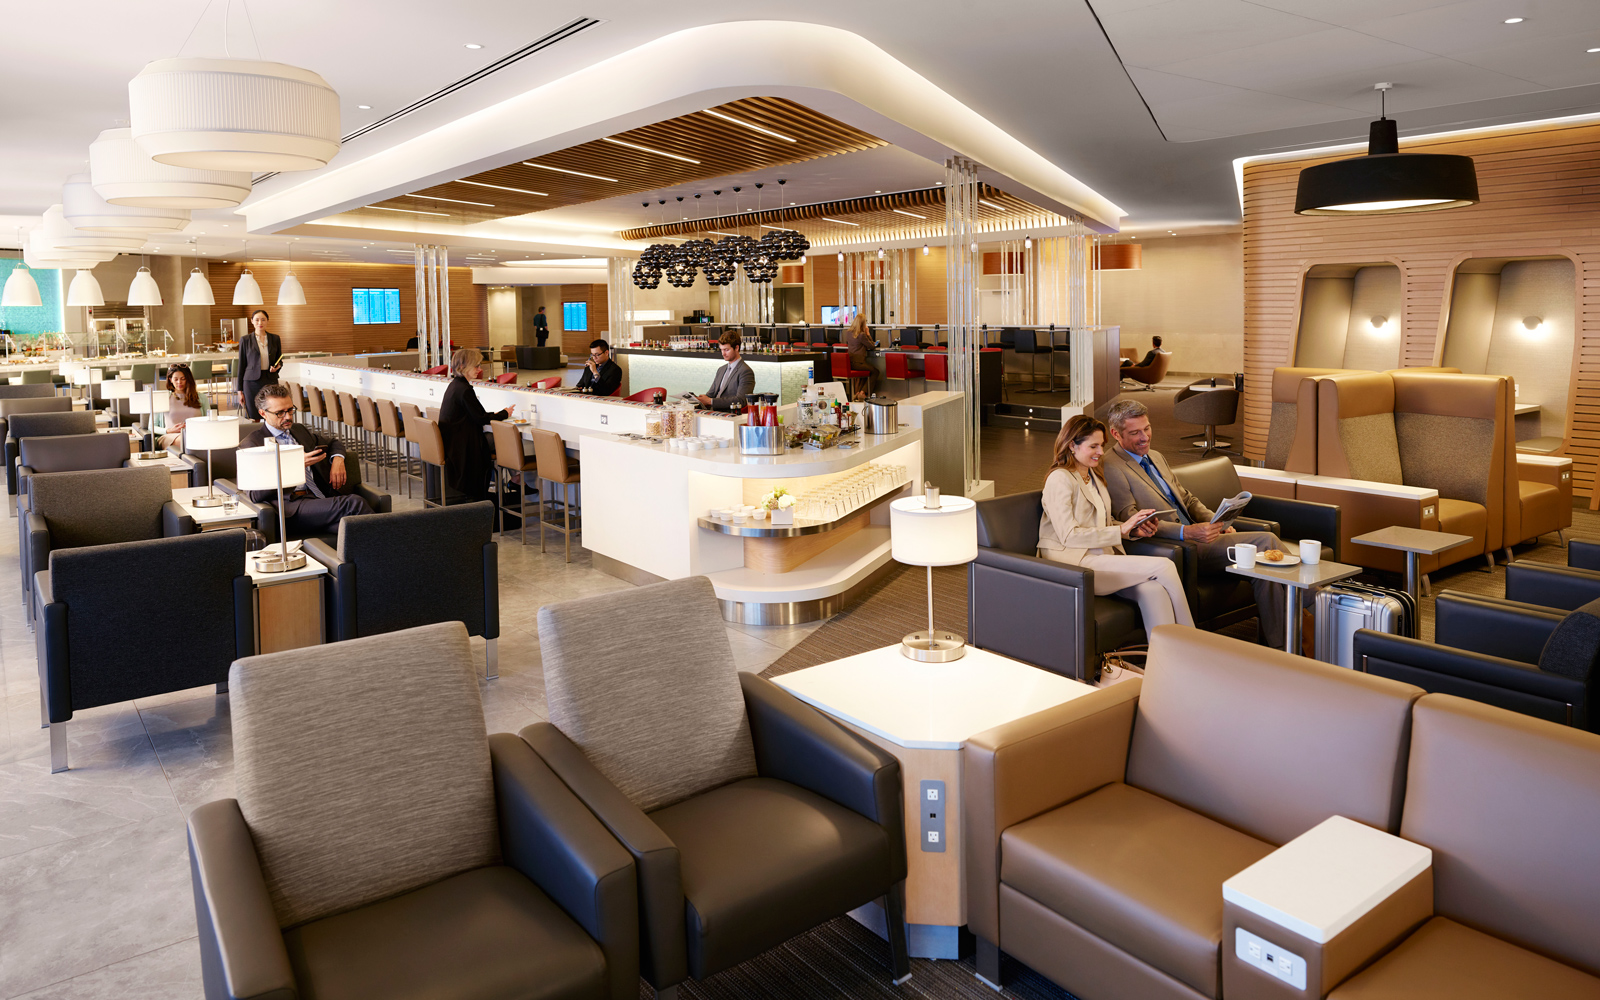 Flagship lounge at JFK.